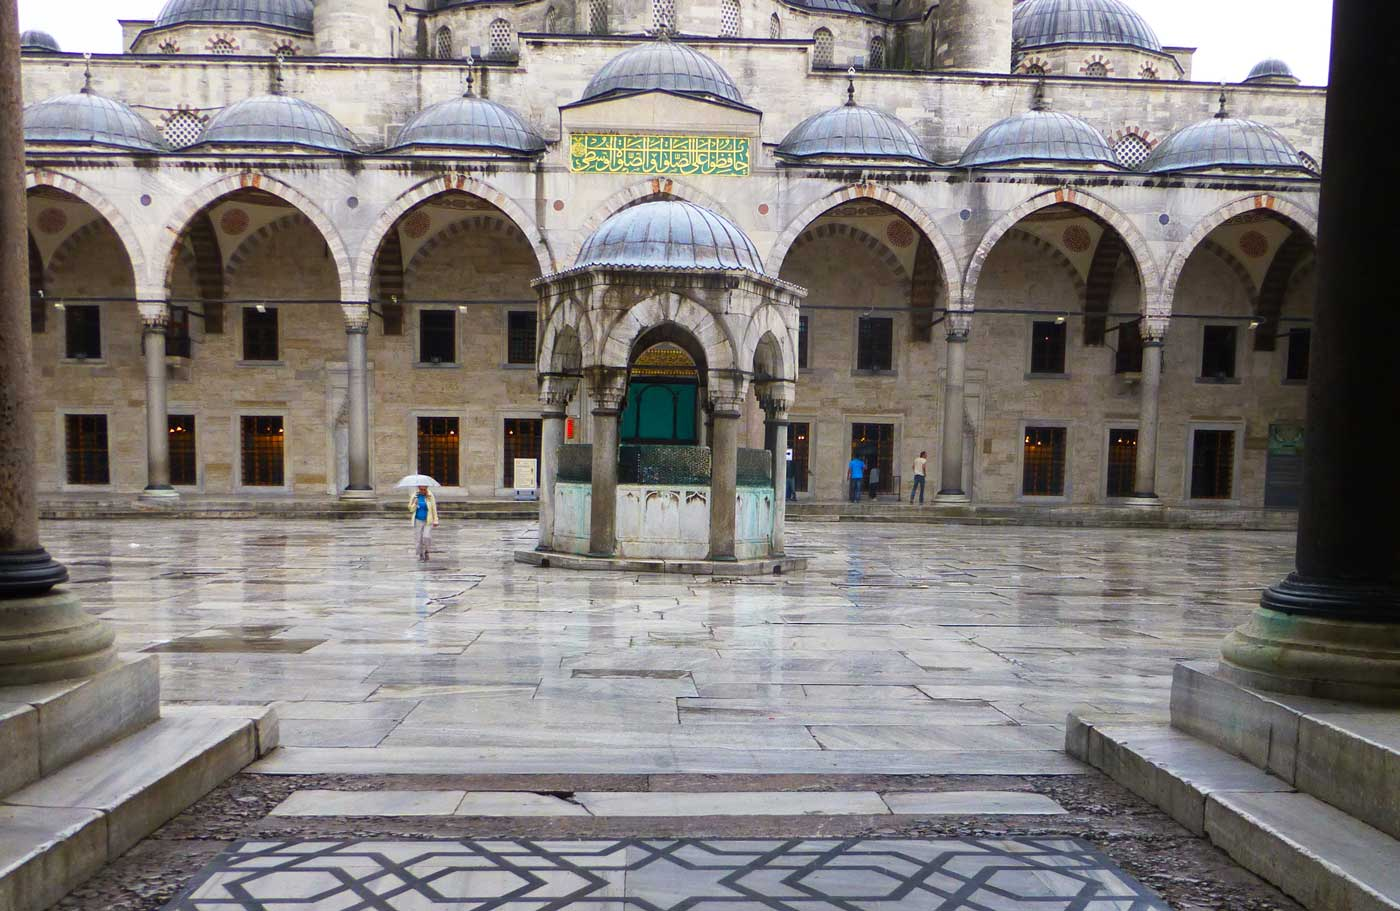 Islamic geometric pattern at the entrance of Sultanahmet Mosque in Istanbul